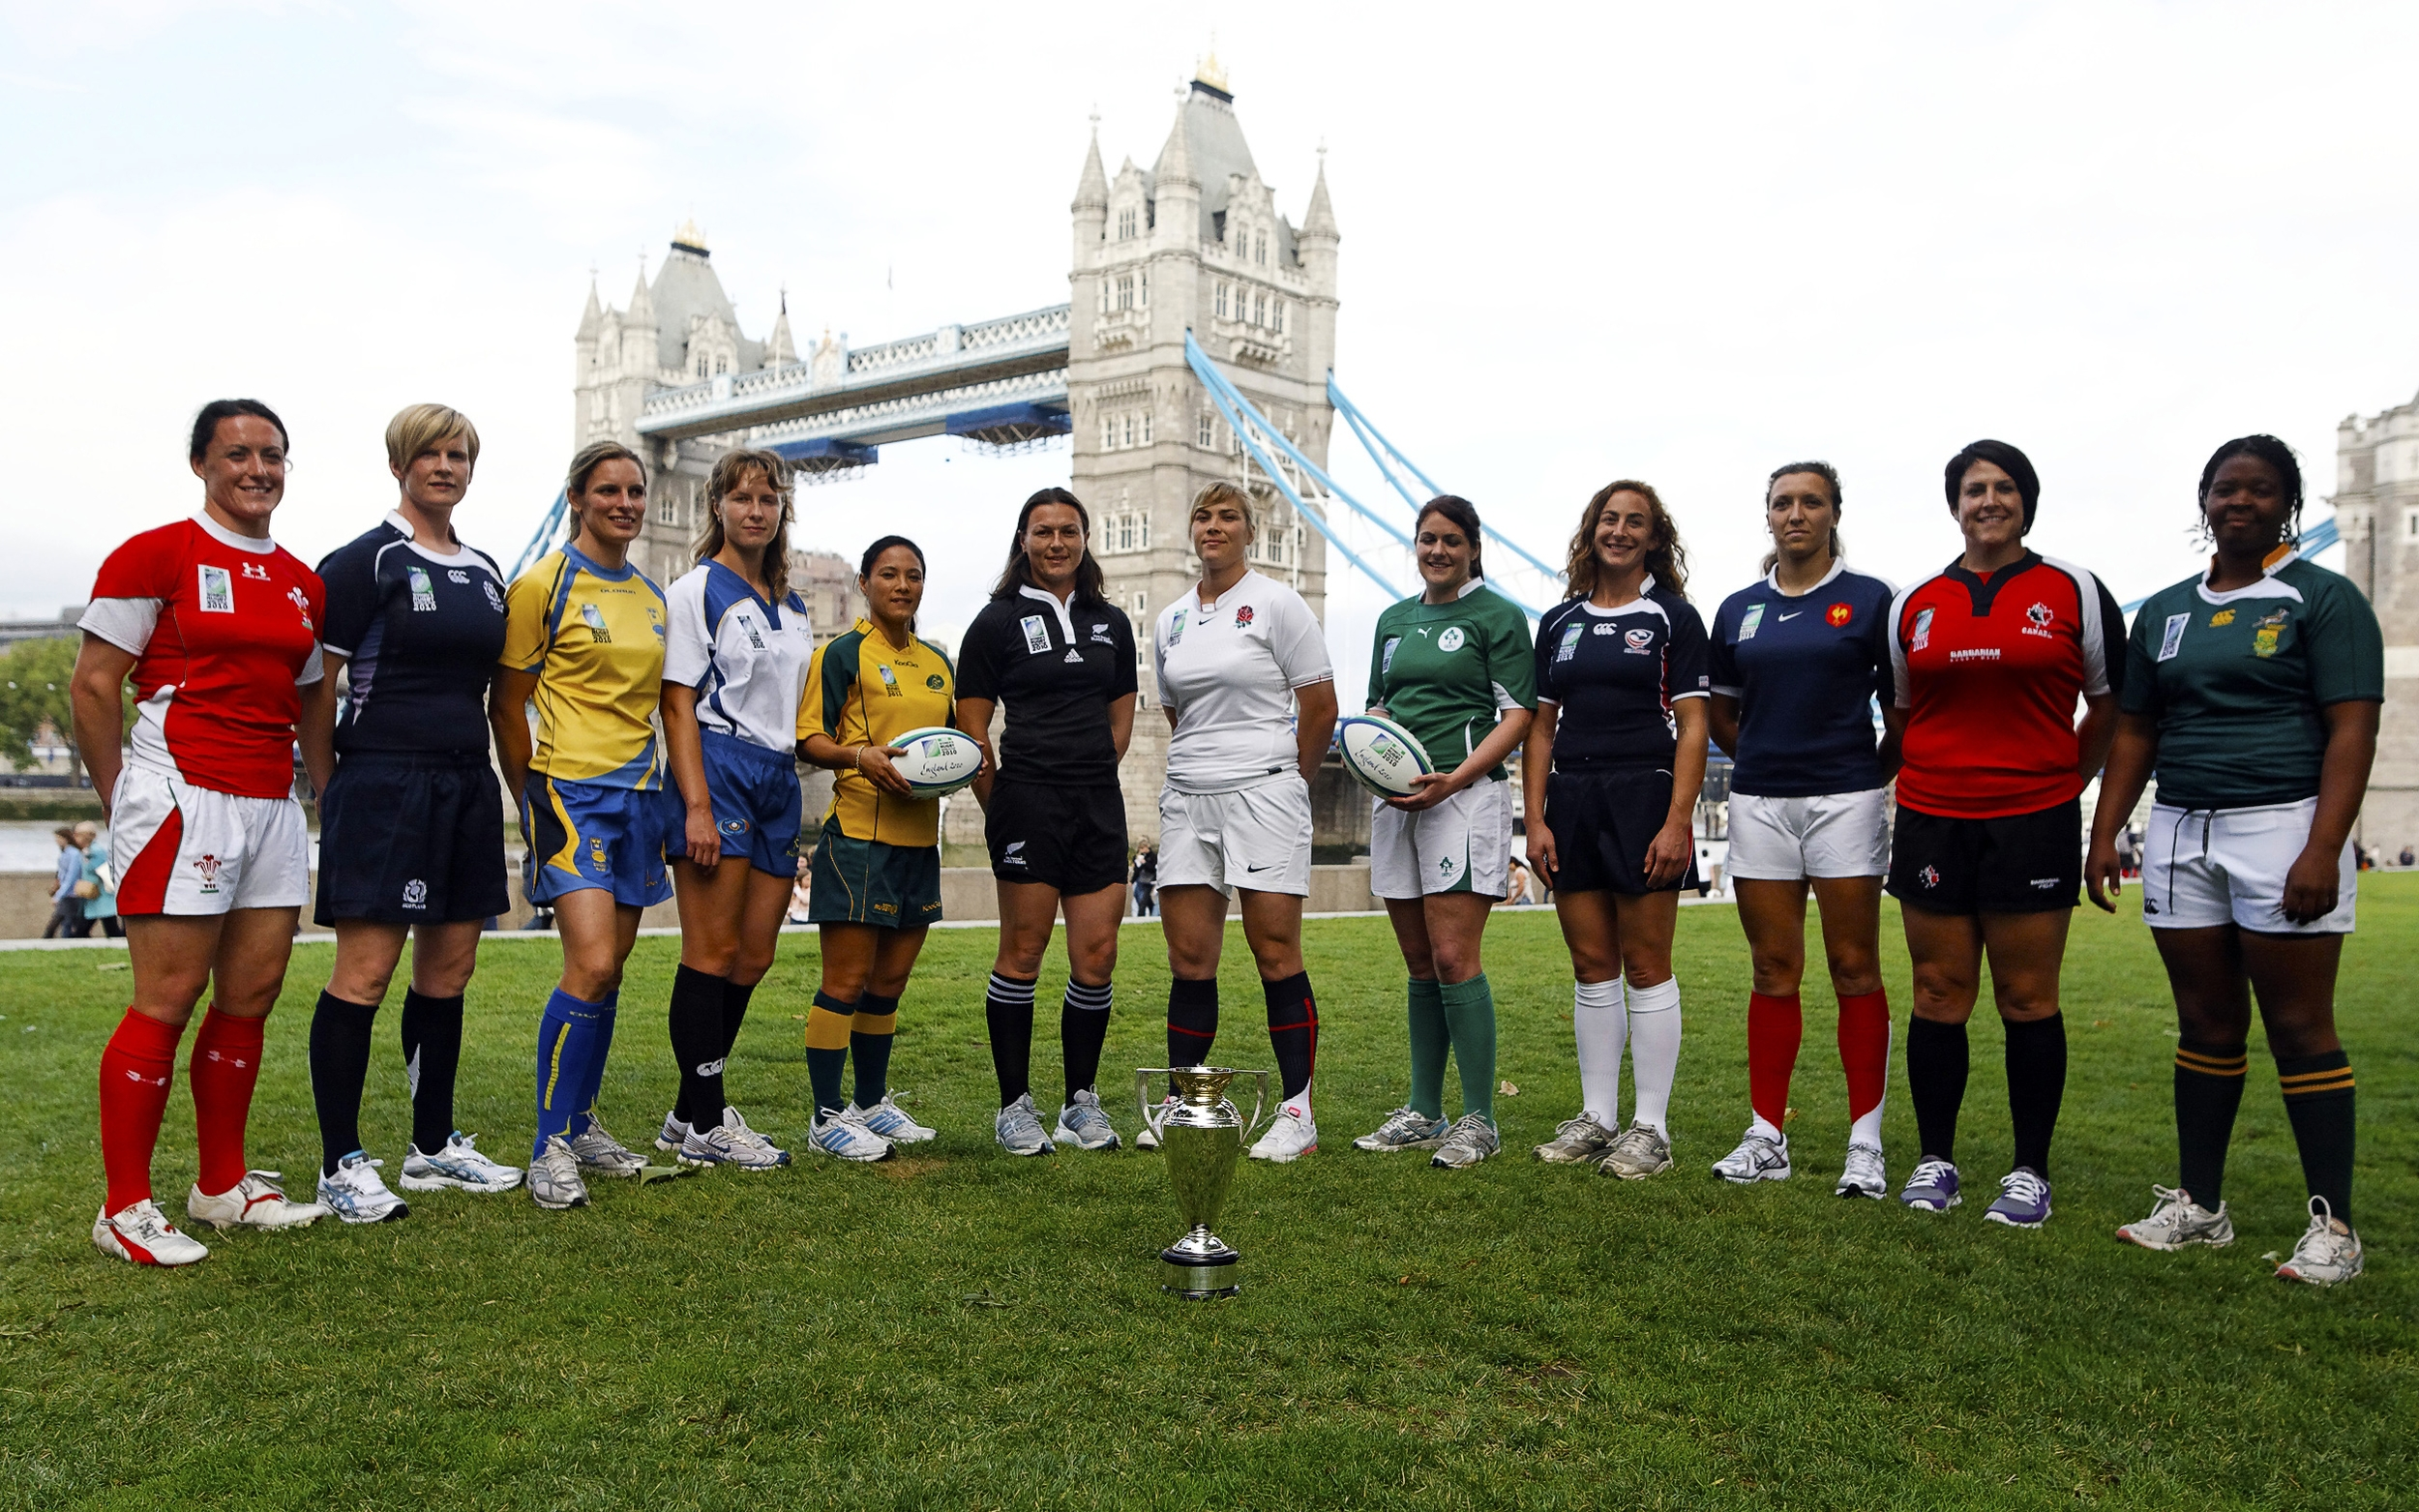 Launch Photo for the Women's Rugby World Cup